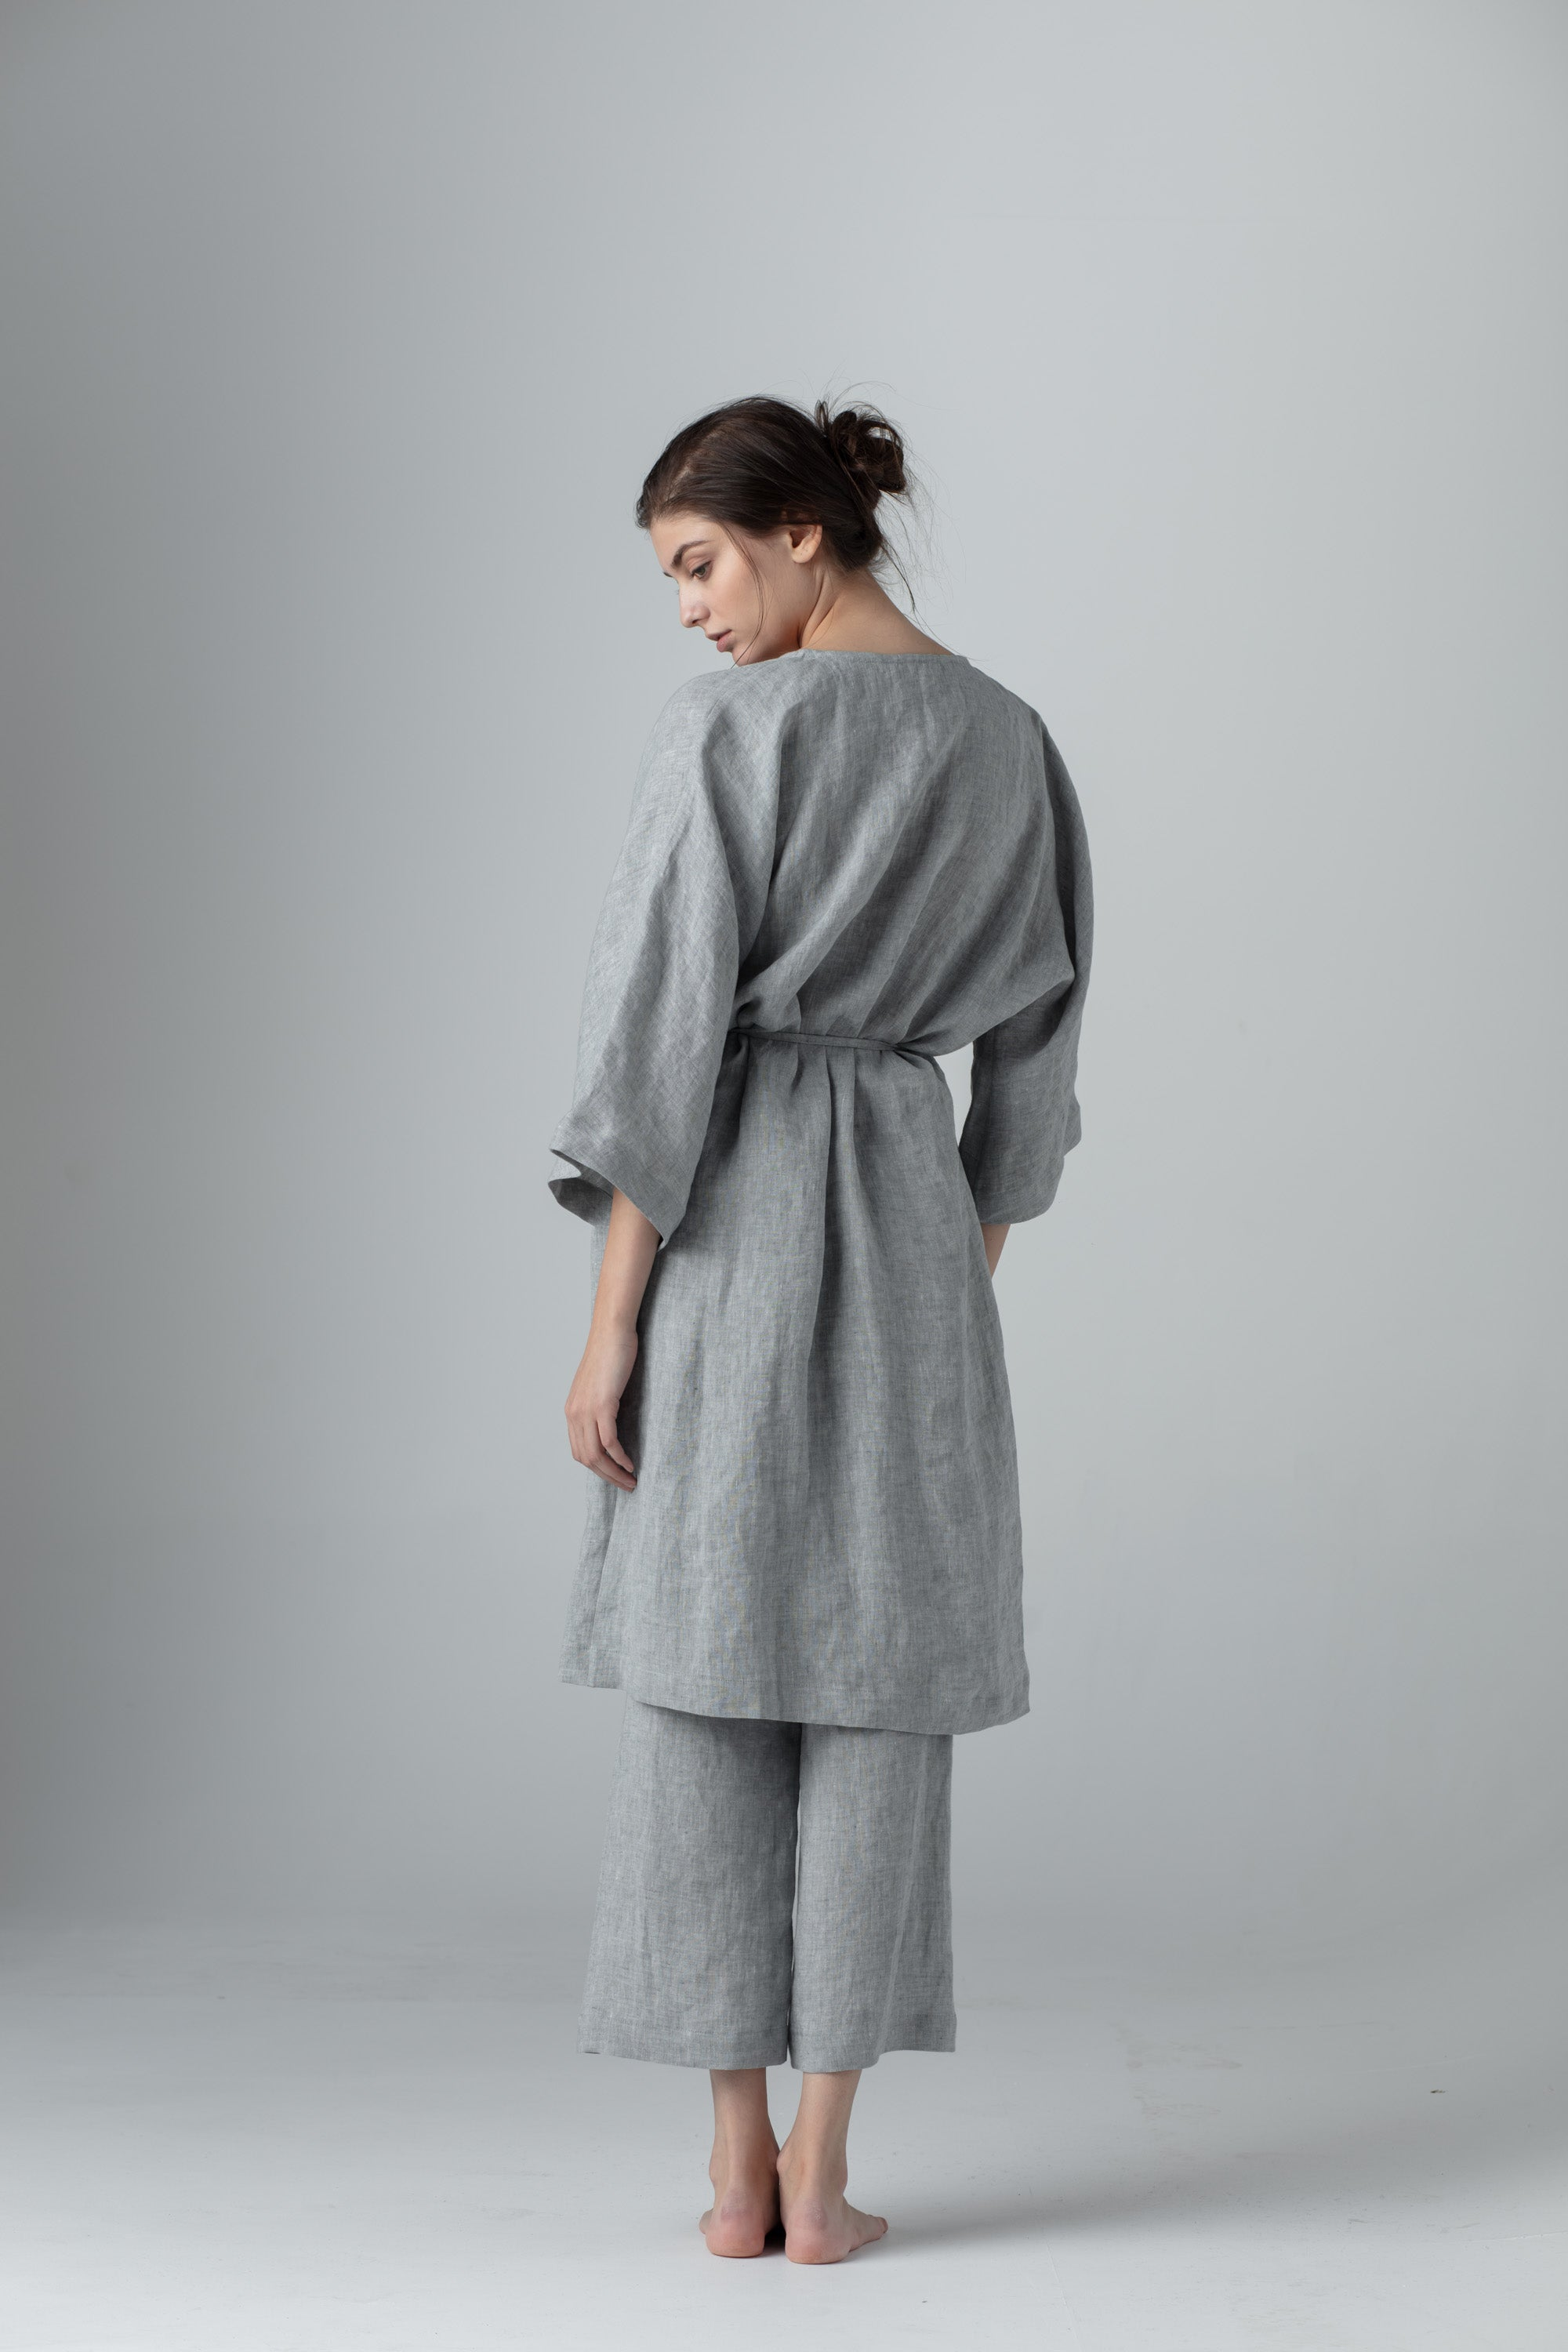 Linen loungewear sustainable clothing